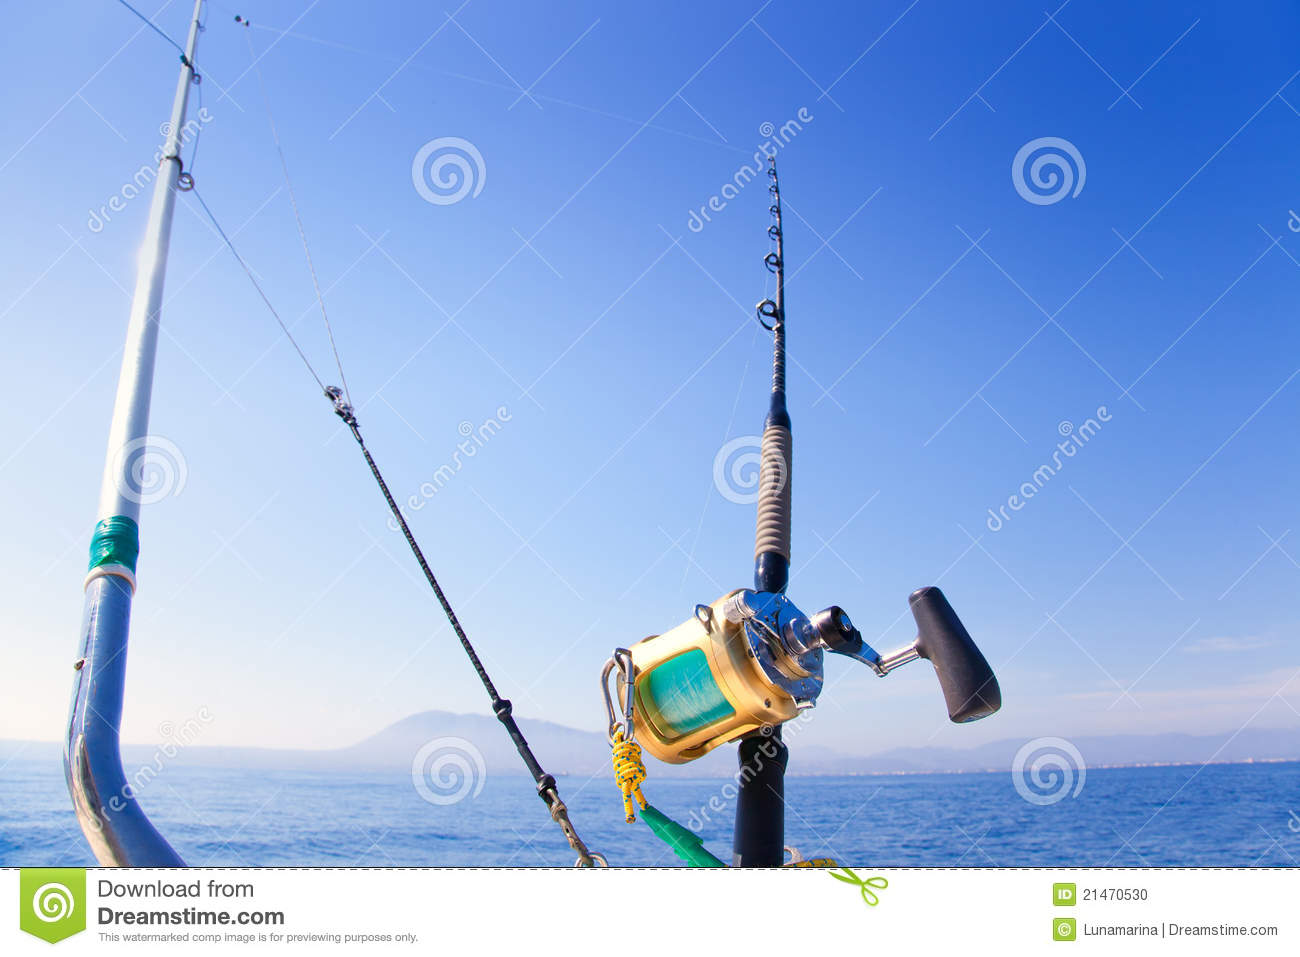 Fishing Boat Trolling With Outrigger Gear Stock Photo - Image: 21470530